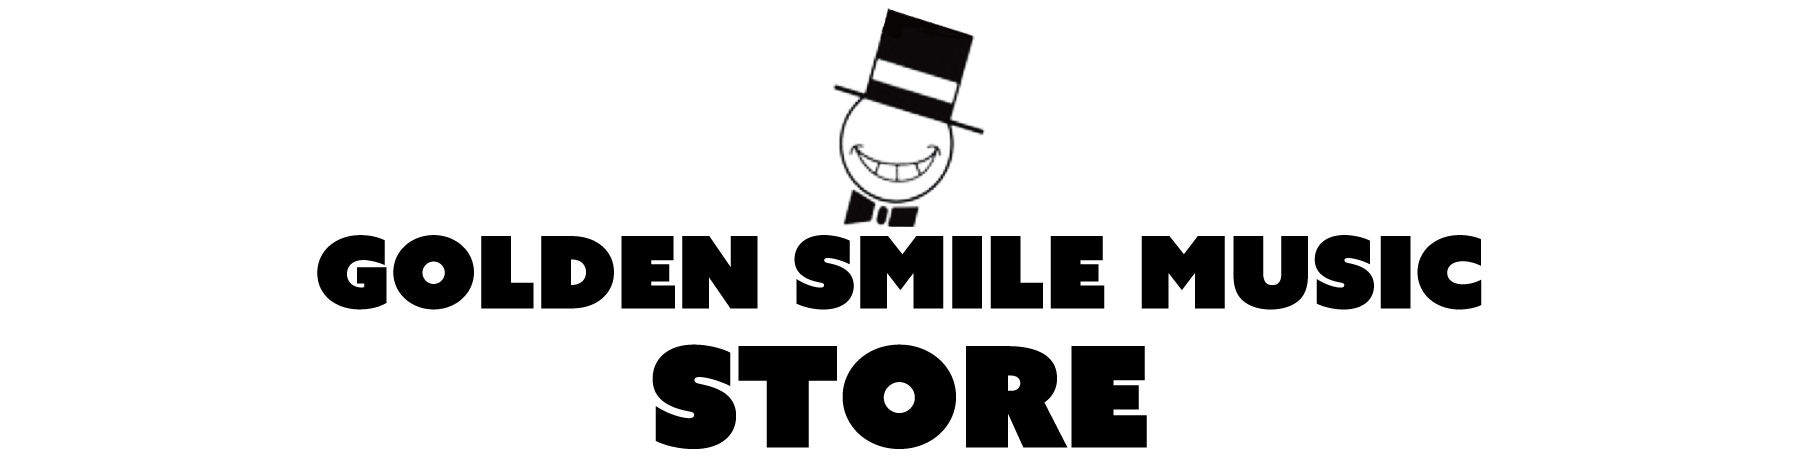 GOLDEN SMILE MUSIC STORE